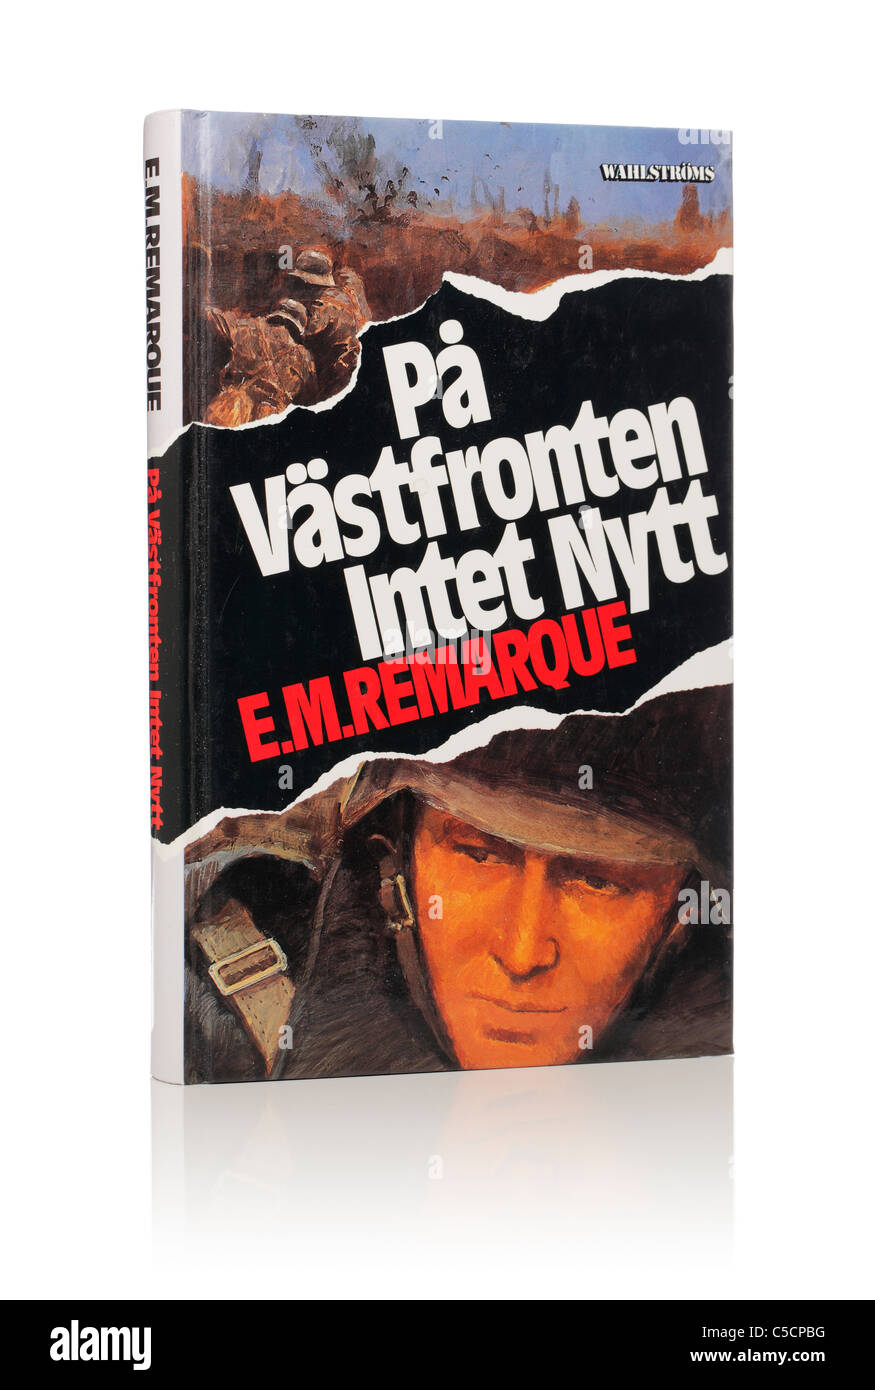 E. M. Remarque's Novel 'All Quiet on the Western Front'. Here in Swedish edition from 1995. - Stock Image